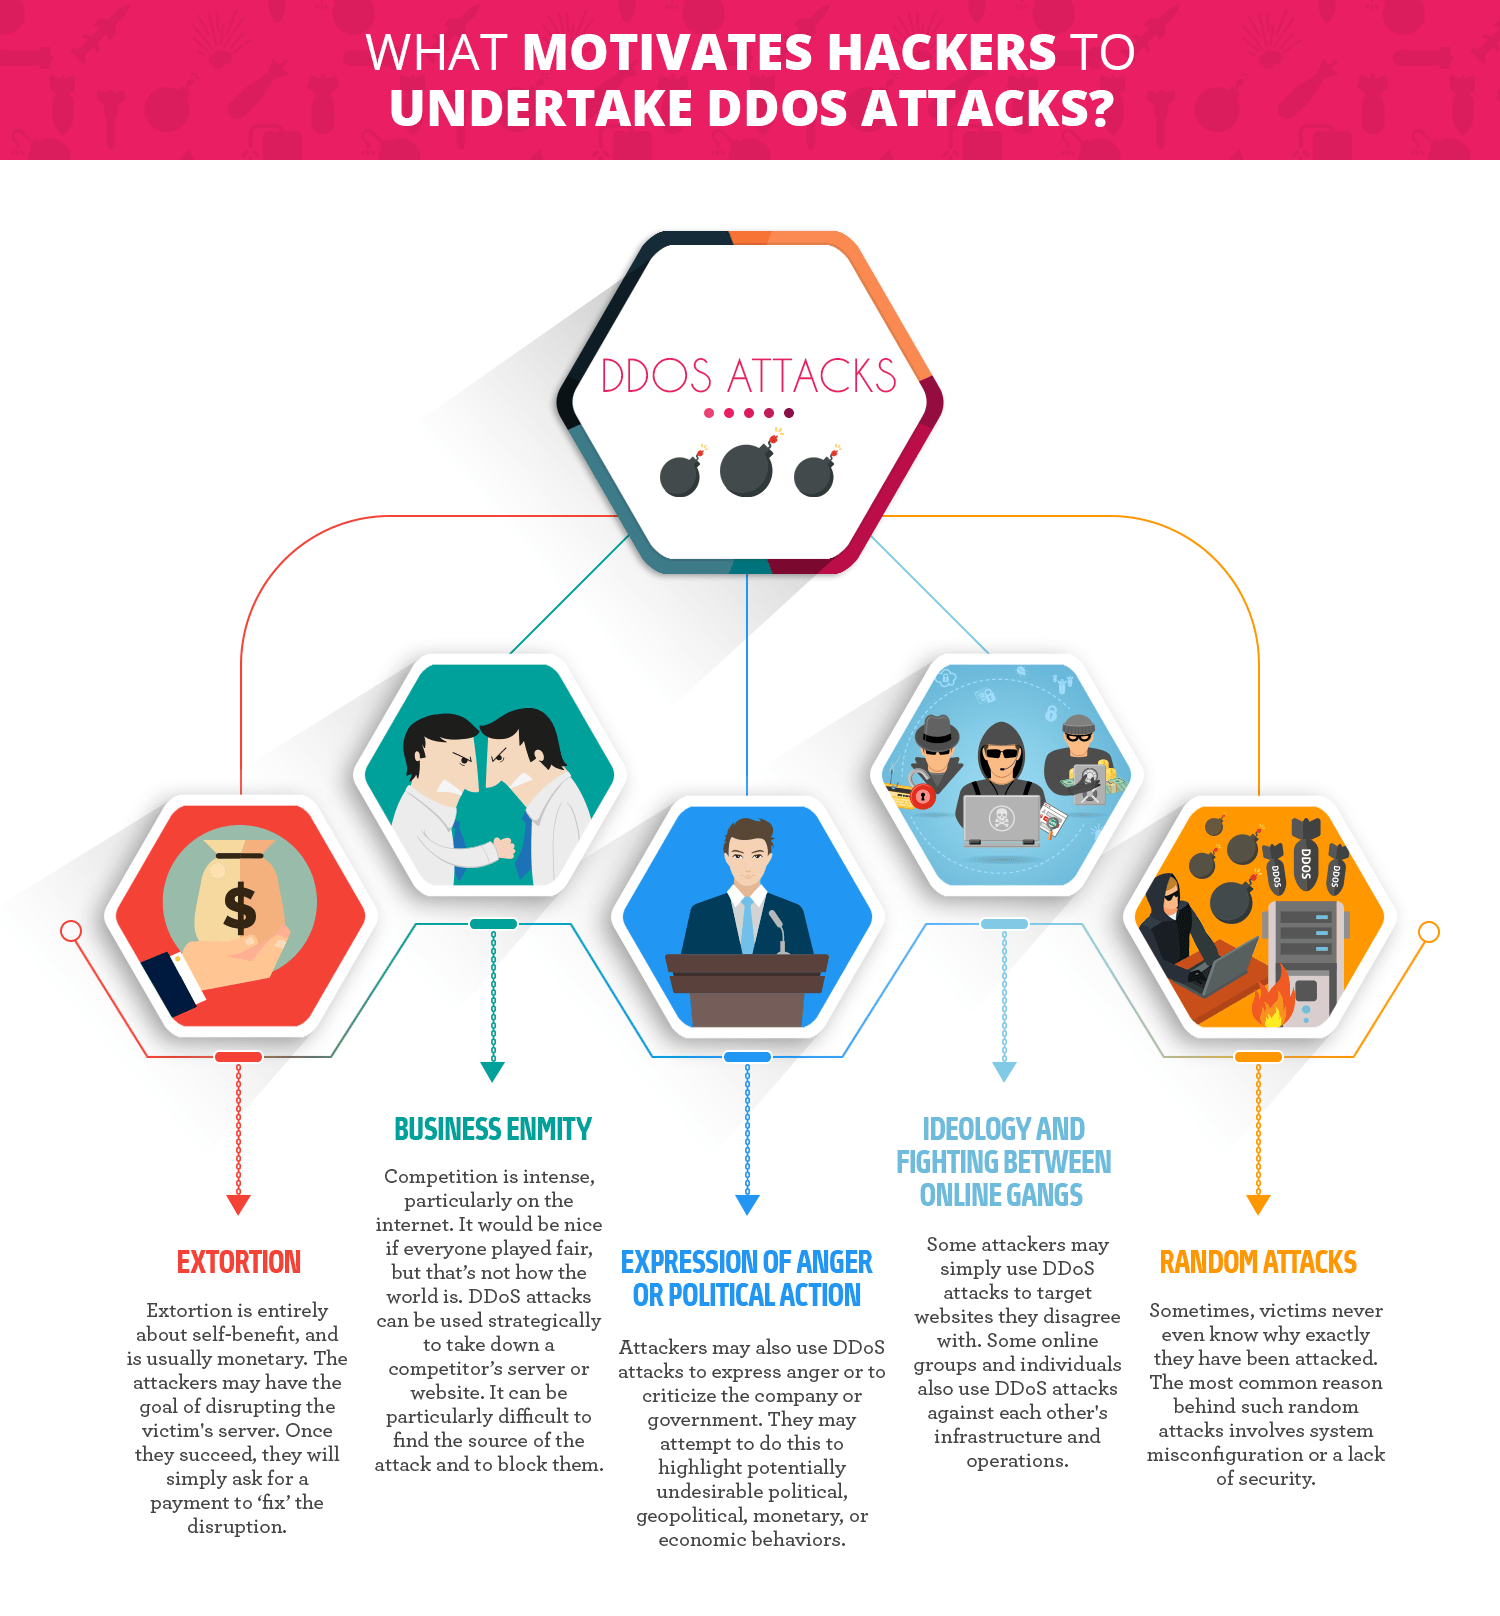 What Motivates Hackers to Undertake DDoS Attacks